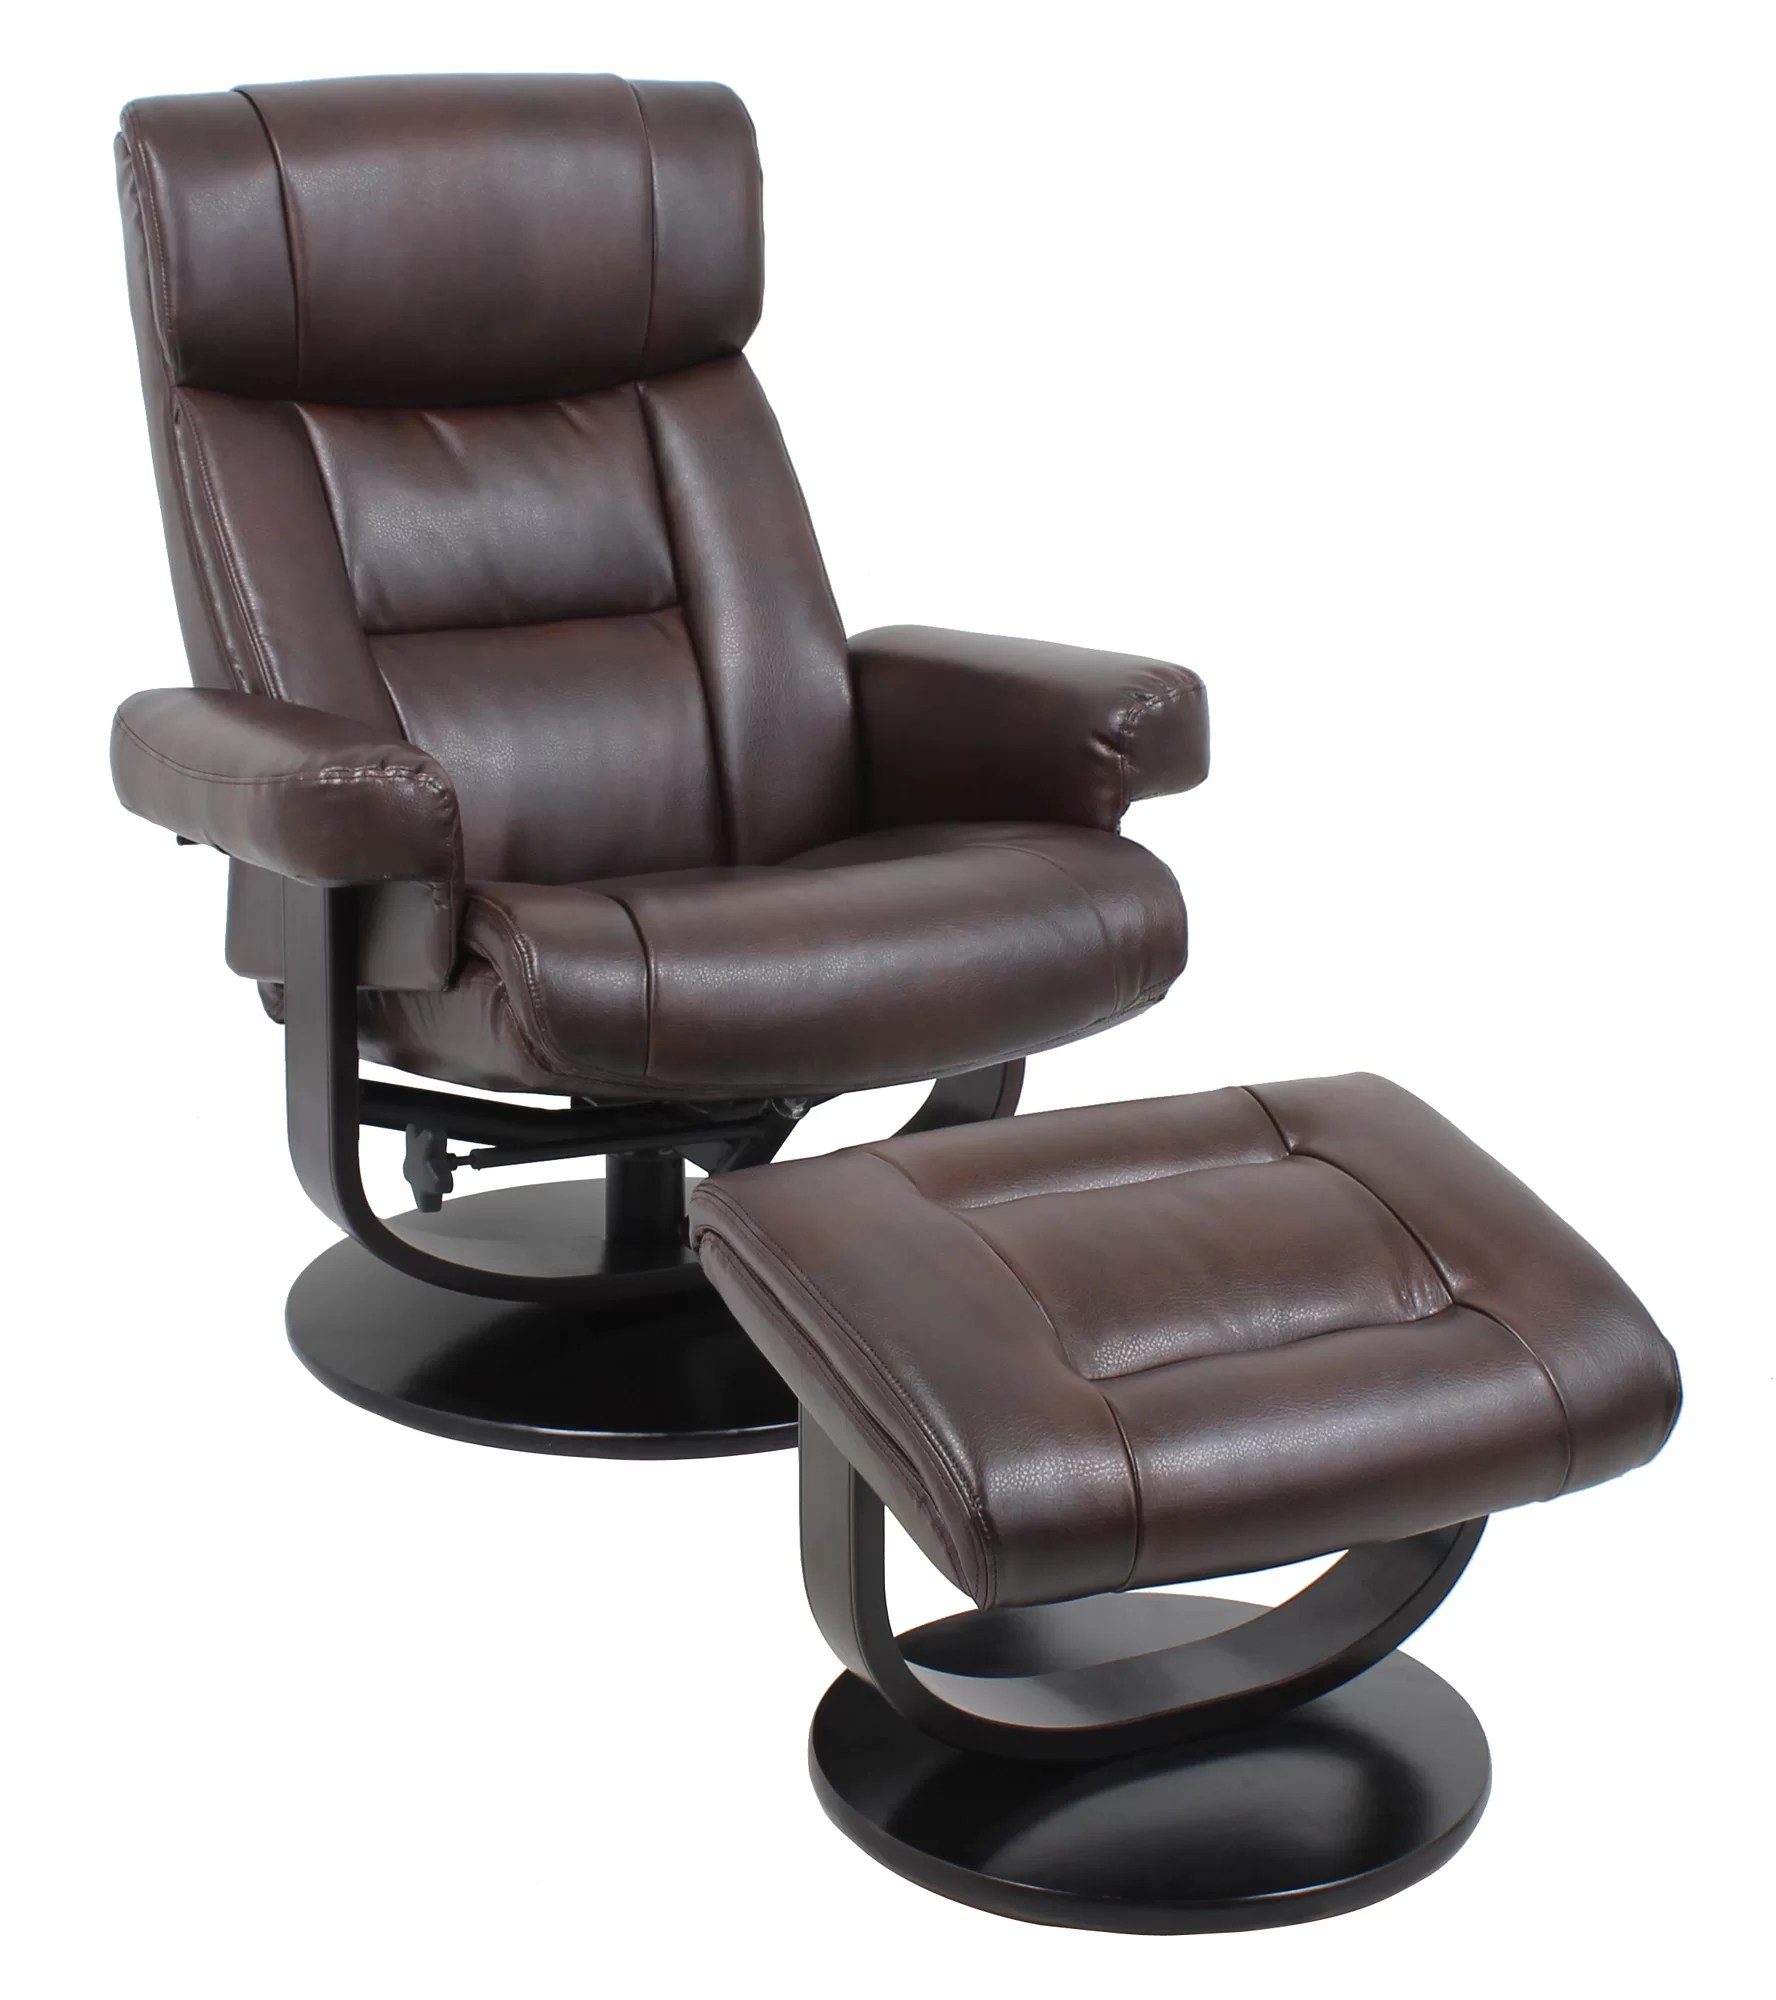 reclining chair with ottoman leather 1950 kitchen table and chairs what is the best recliner